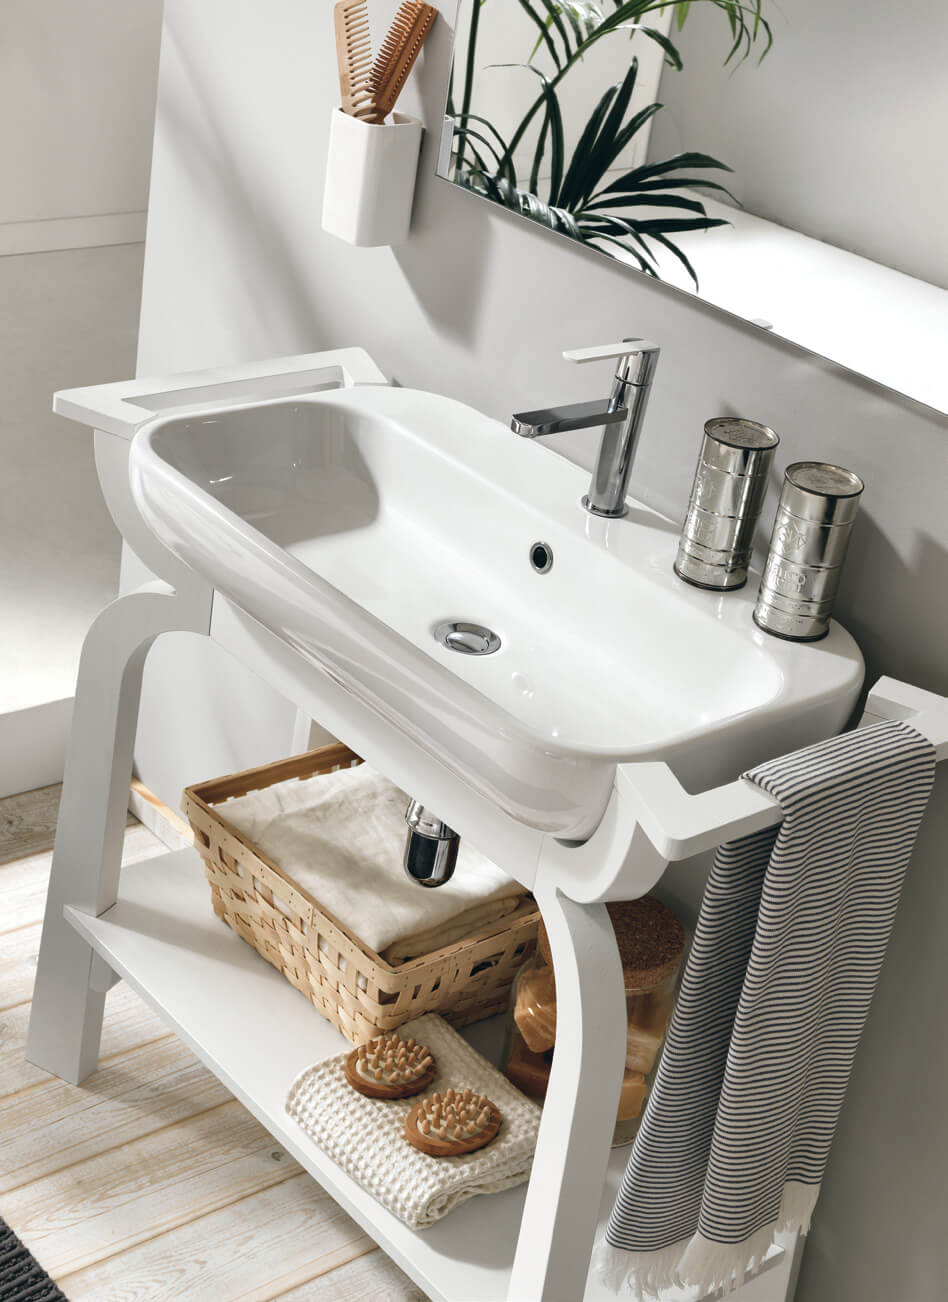 https://www.mobiliacolori.it/wp-content/uploads/2018/08/mobile-bagno-moderno-Raf.jpg